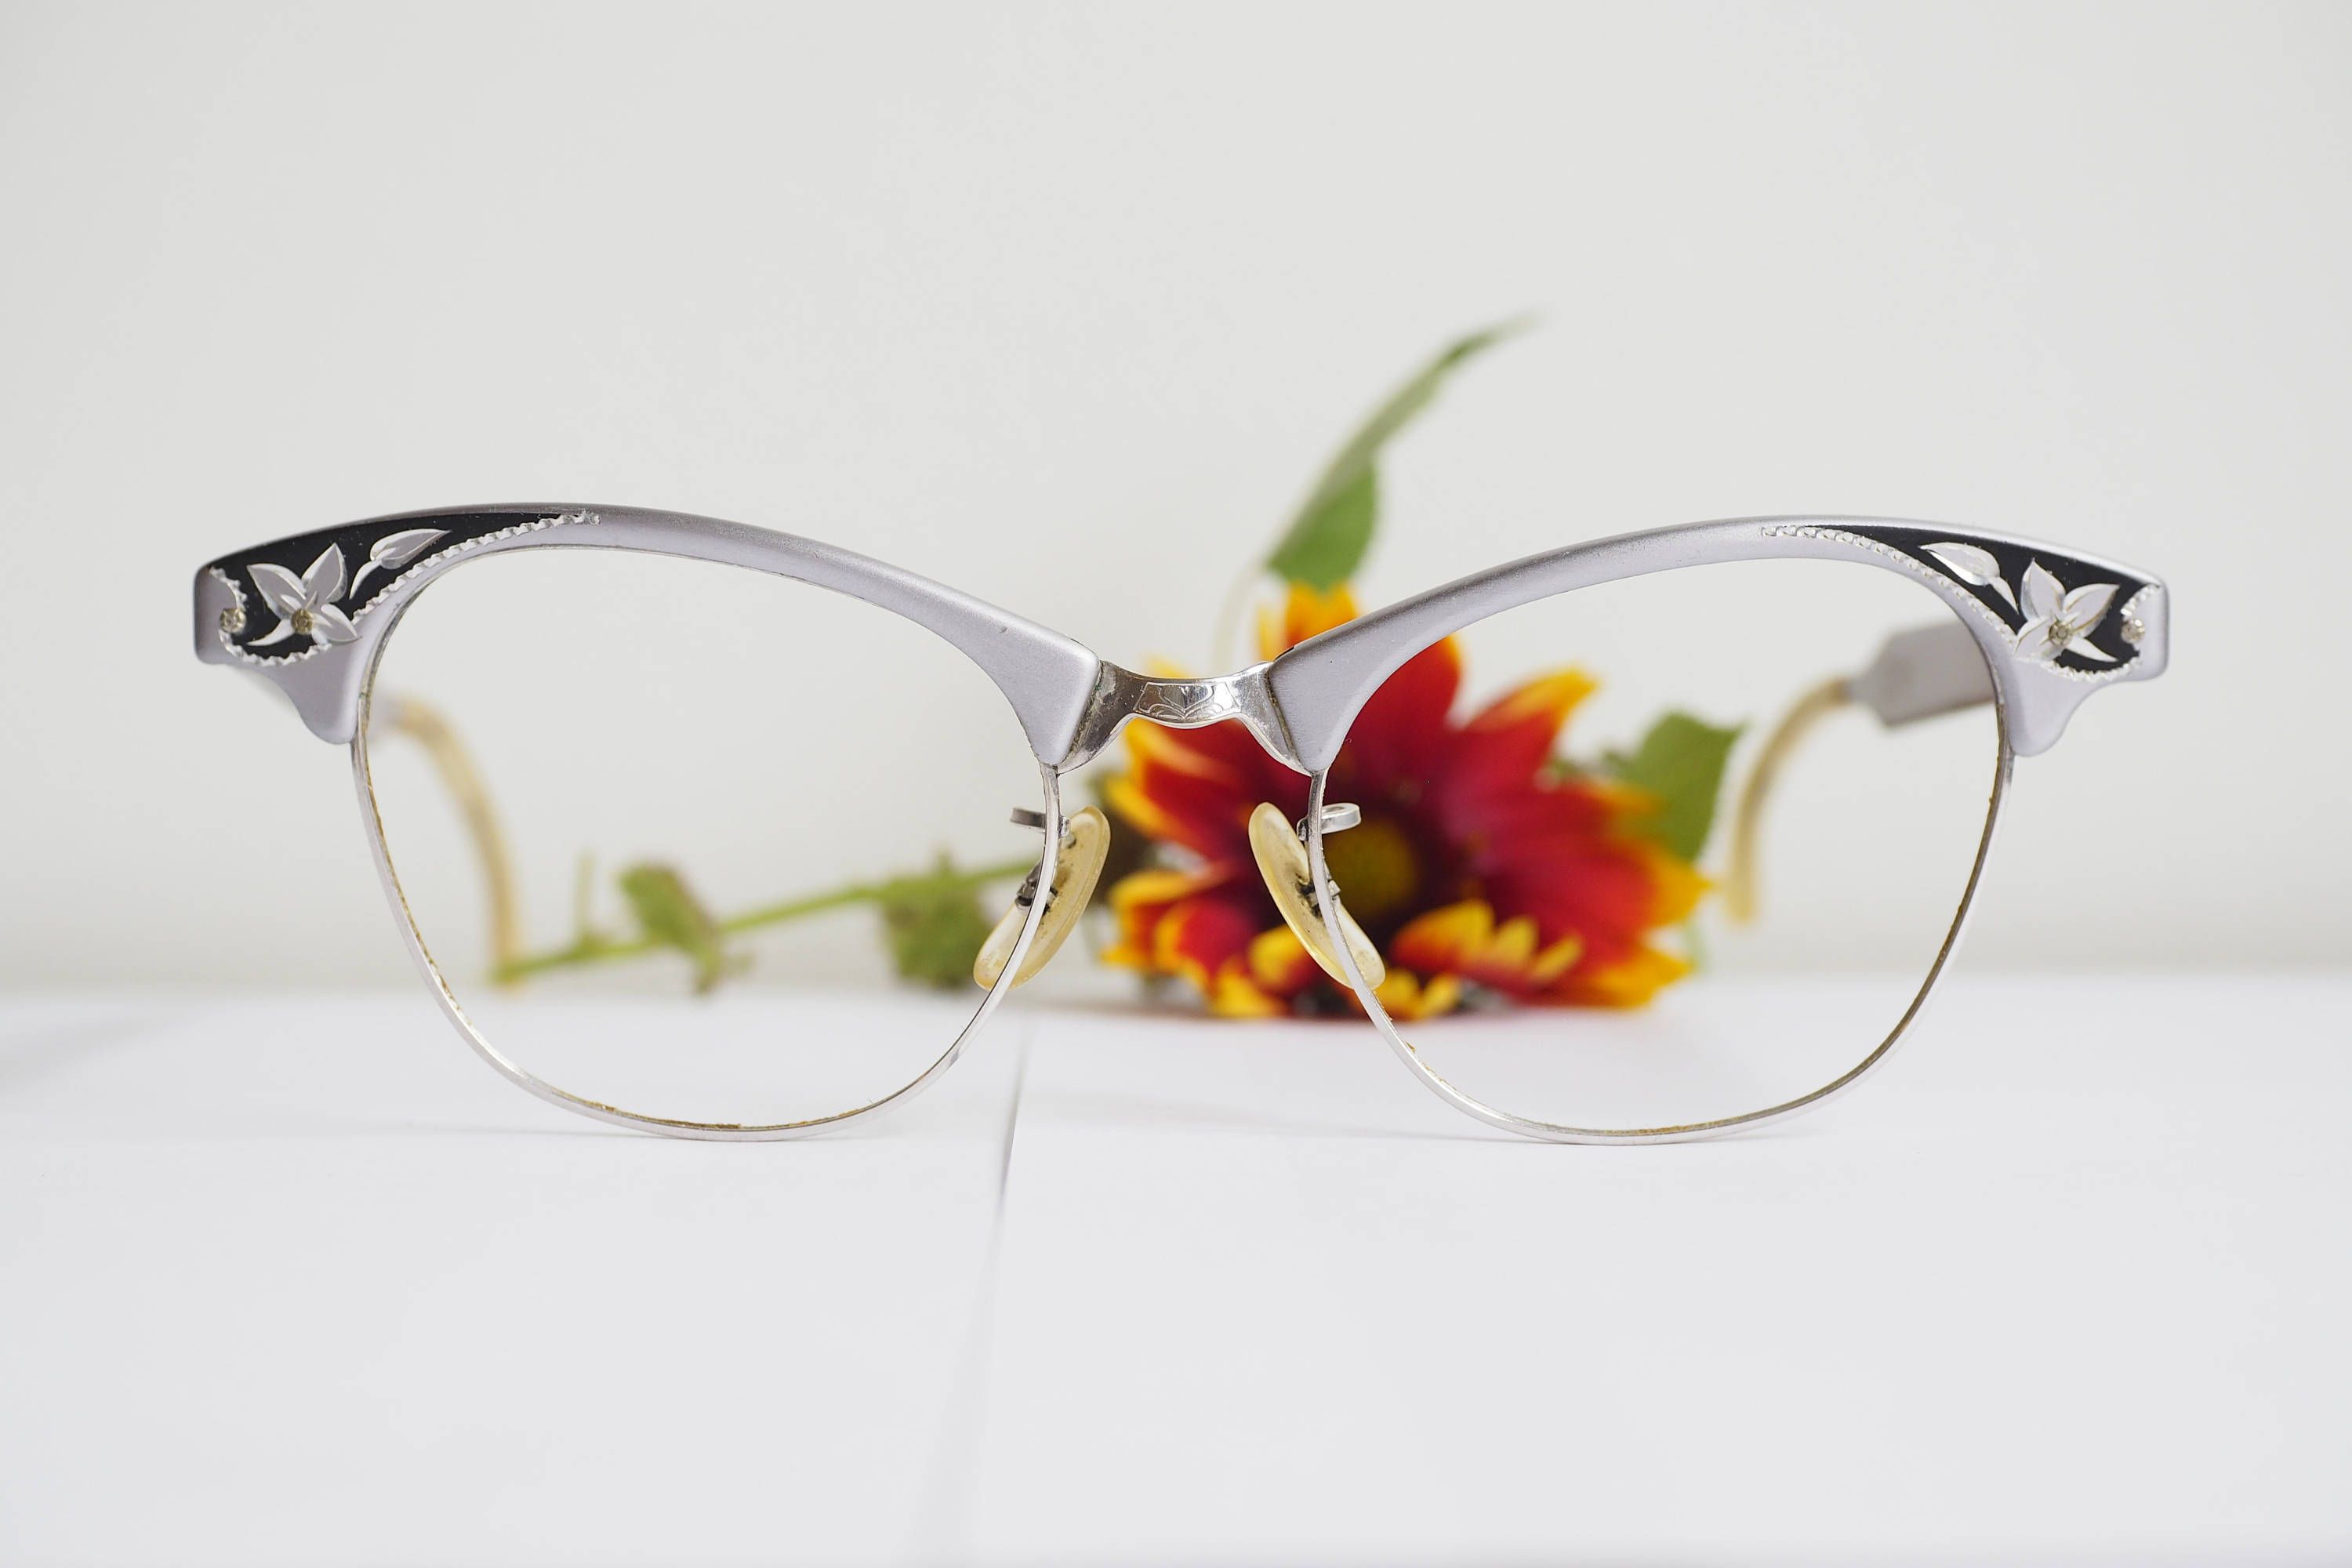 31deb8ee6f5 Vintage Cat Eye Glasses 1960 s Cateye Frames By Artcraft Made In USA  Eyeglasses All Metal 12k Gold filled by hisandhervintage on Etsy